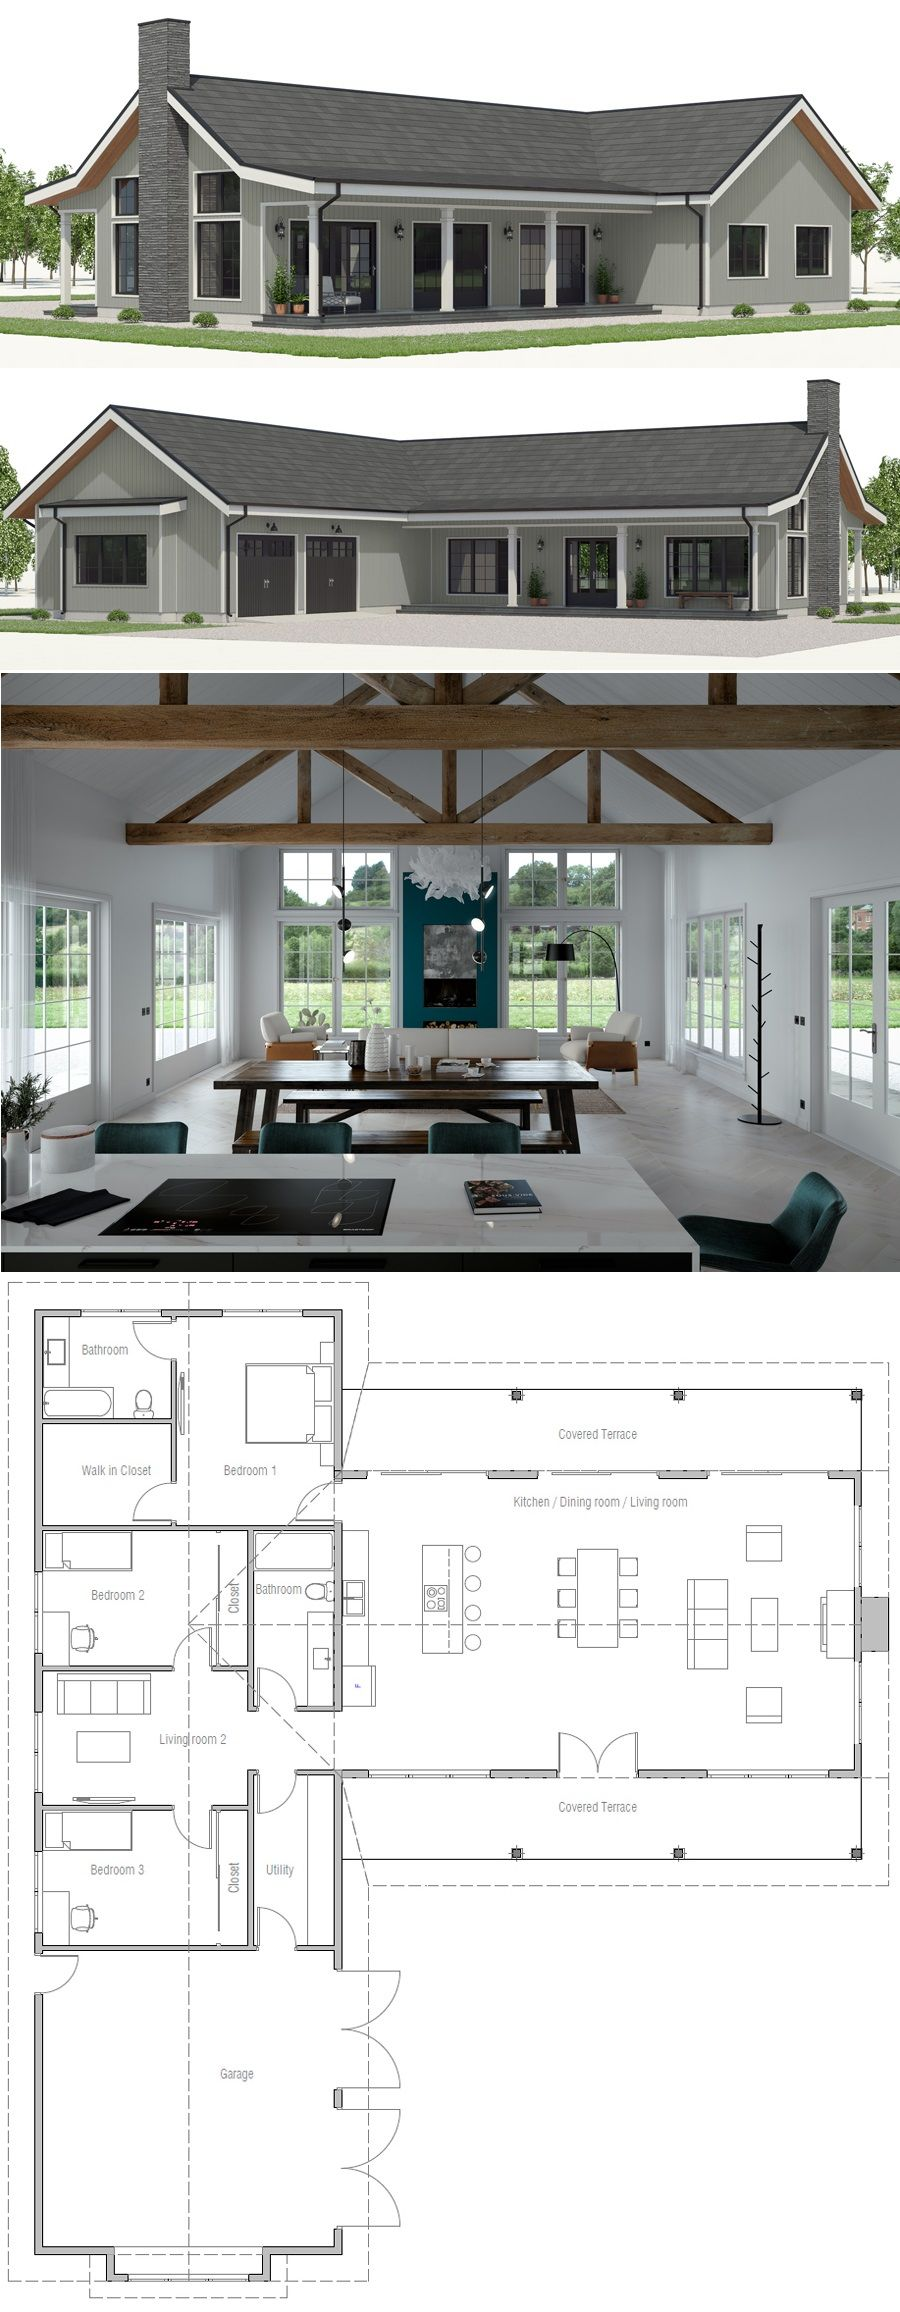 House plan ch also best home design images in rh pinterest